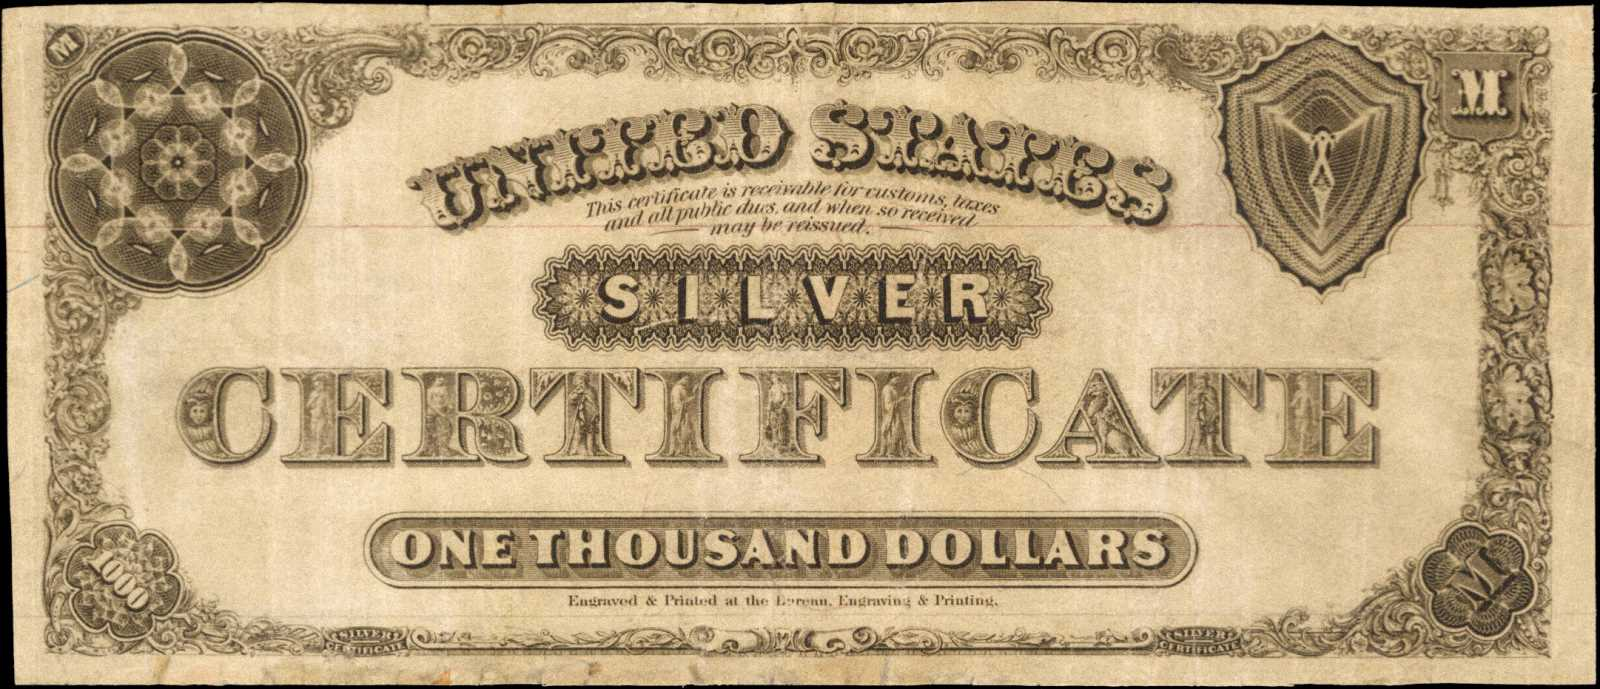 enlarged image for Joel. R. Anderson Collection of United States Currency Auction Realizes Nearly $10 Million in 2nd Sale